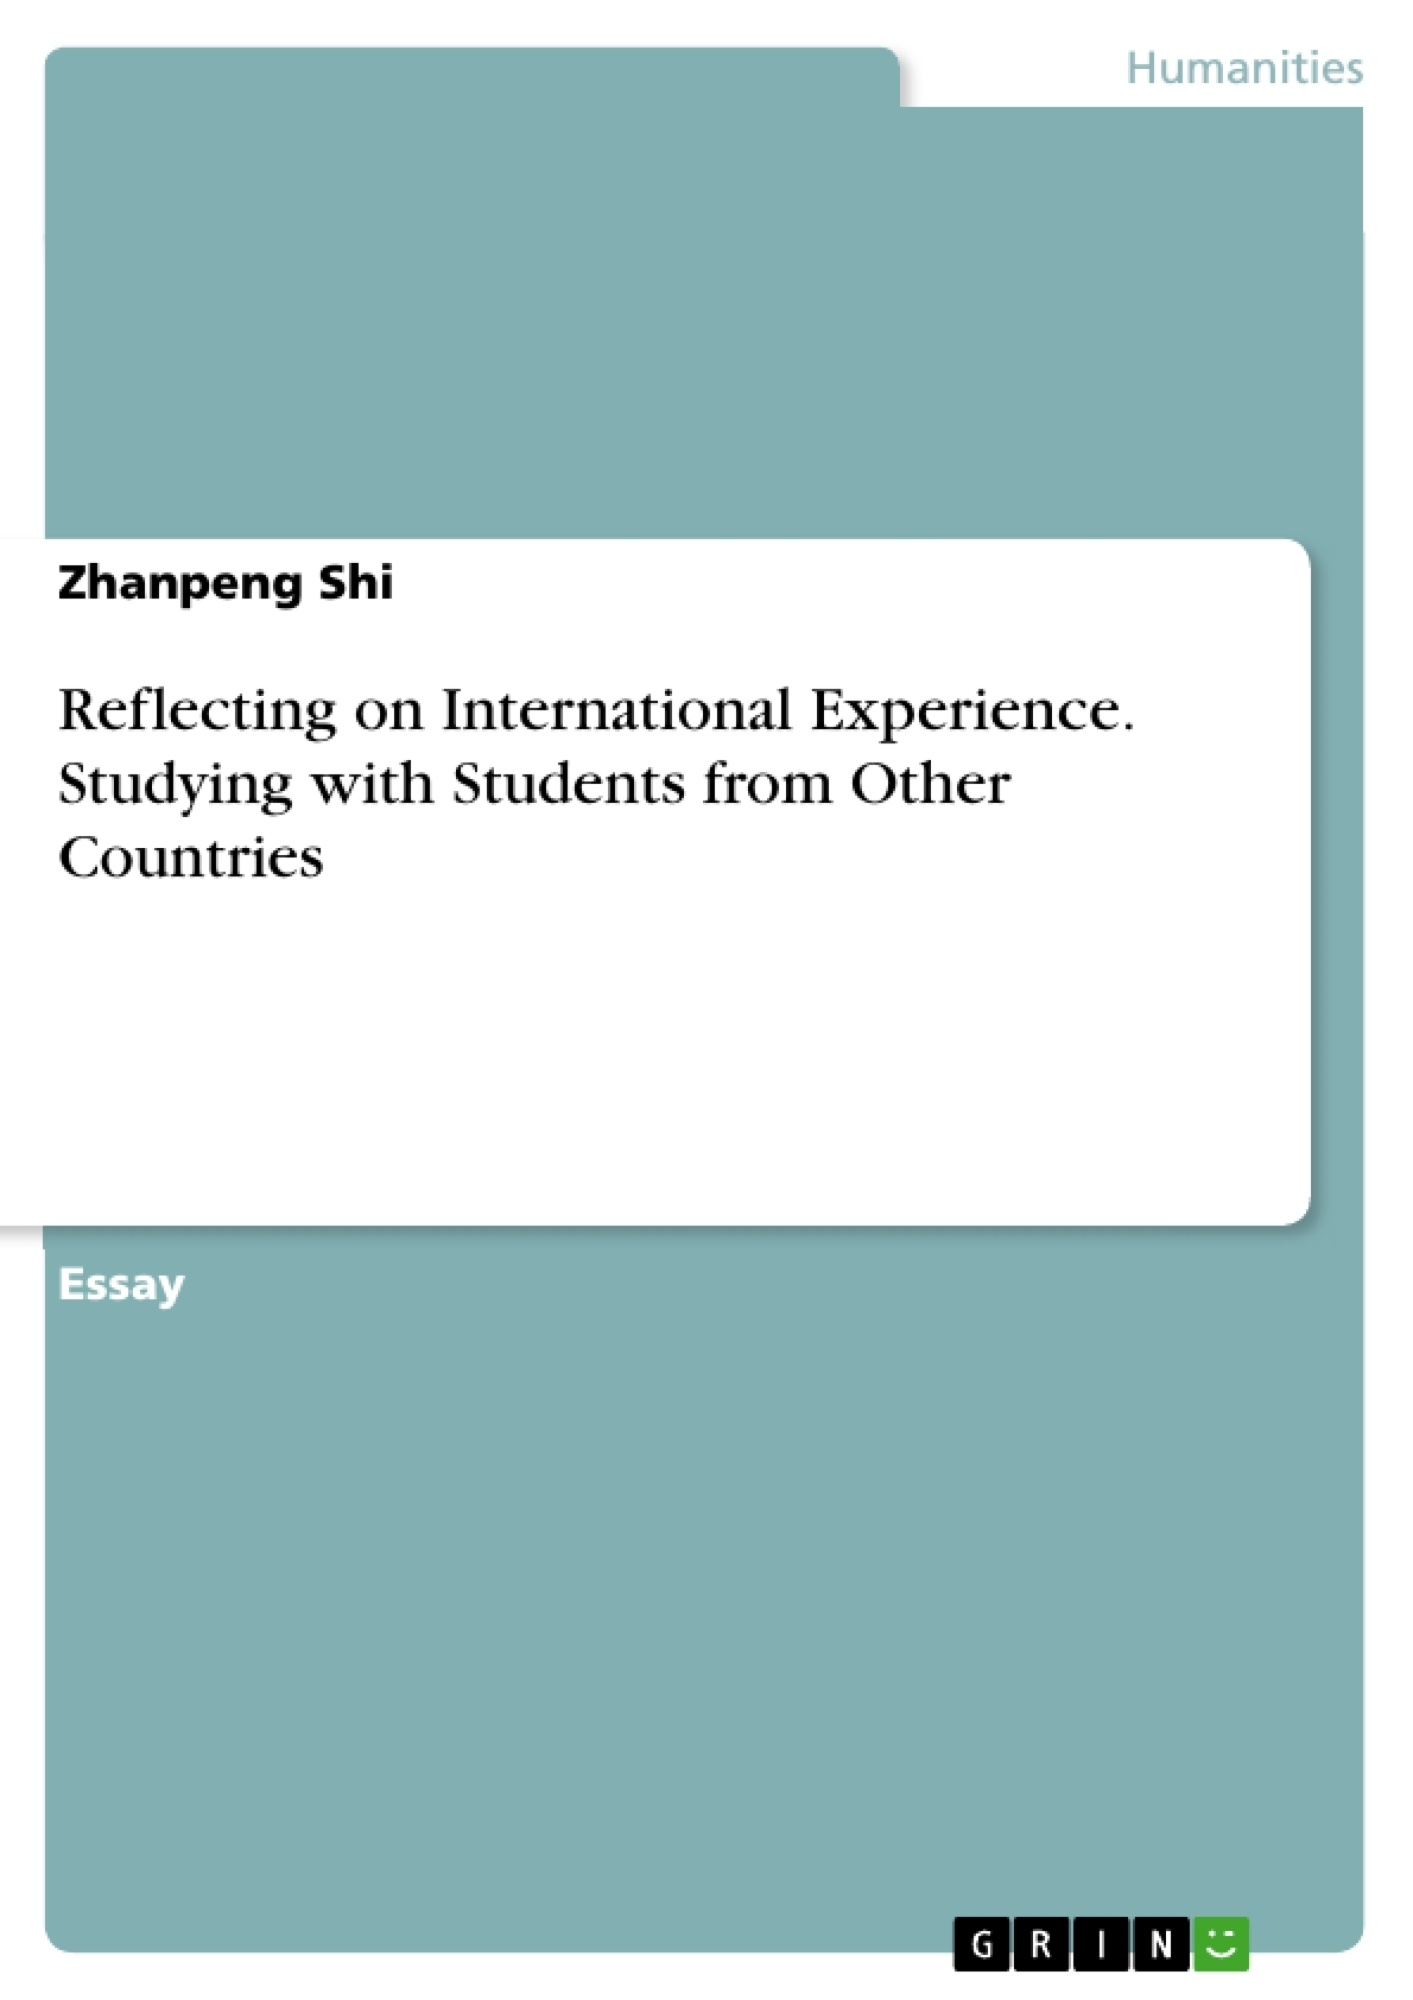 Title: Reflecting on International Experience. Studying with Students from Other Countries